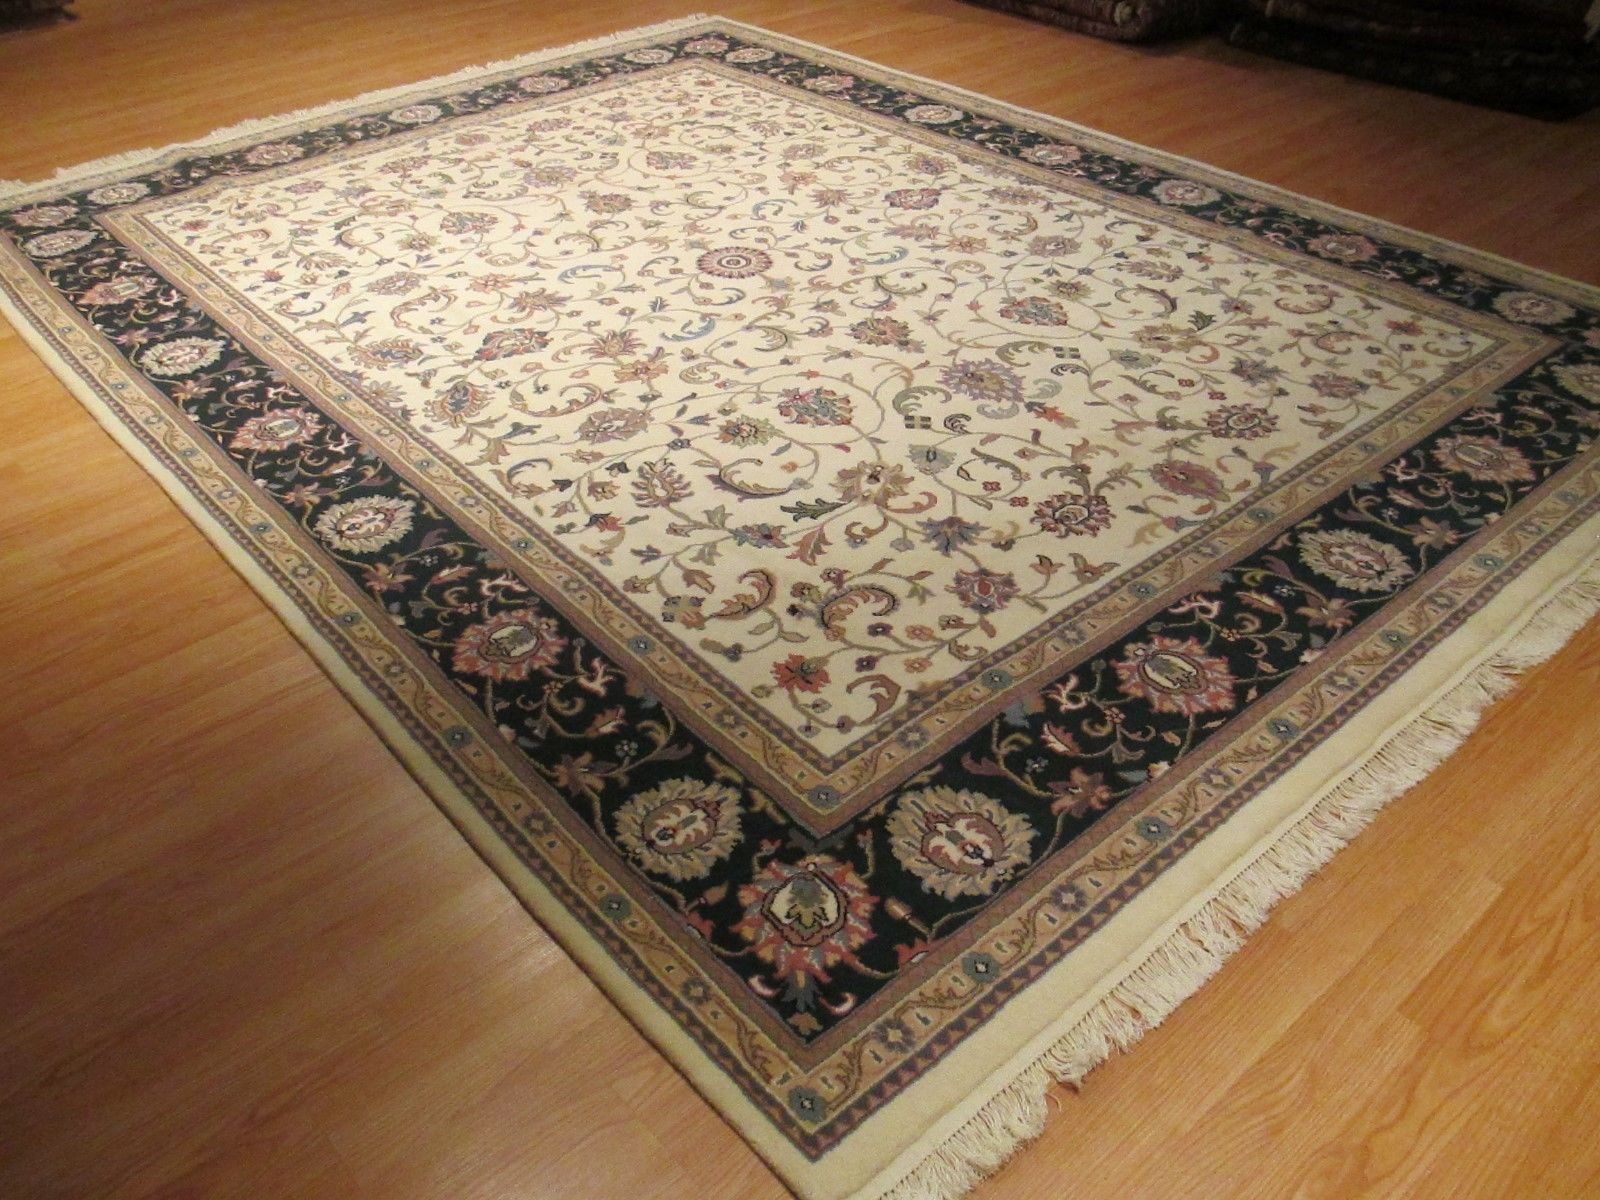 Professional Area Rug Cleaning In Orlando Florida Including